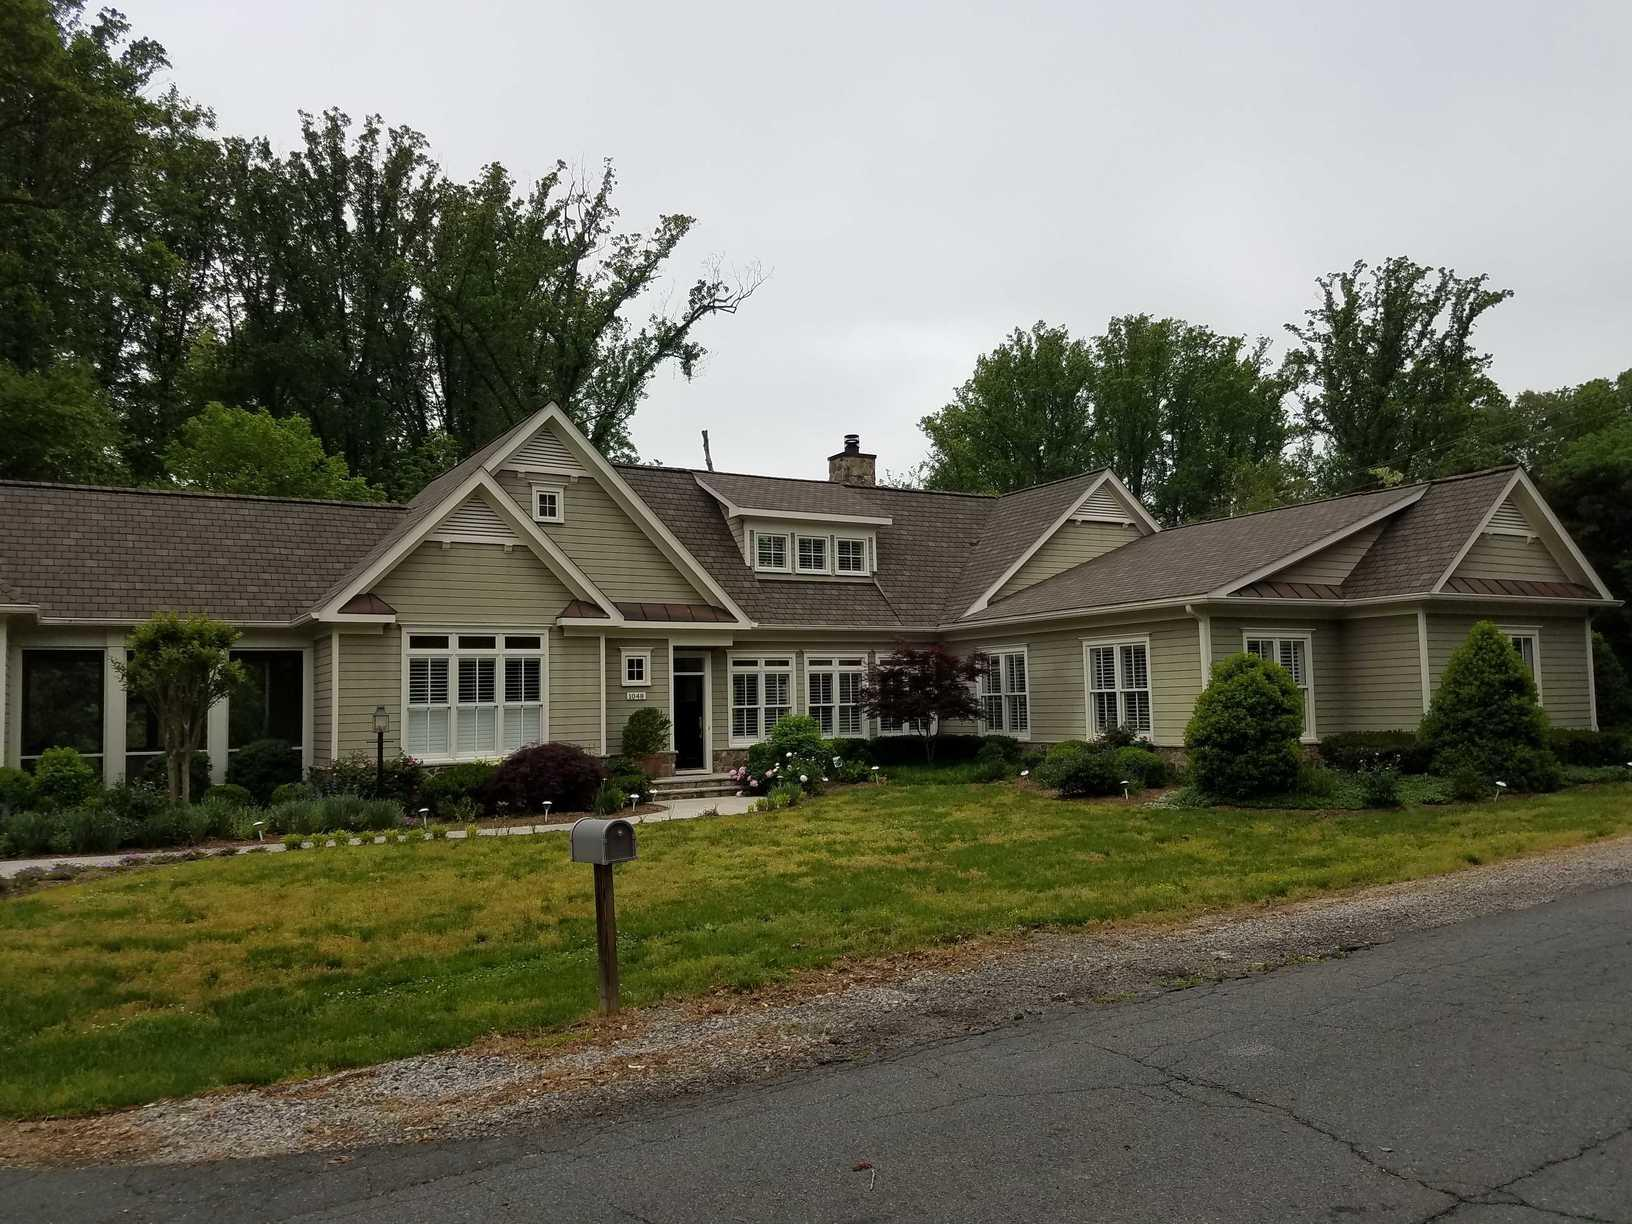 MasterShield Gutter Protection in McLean, VA.  - Before Photo